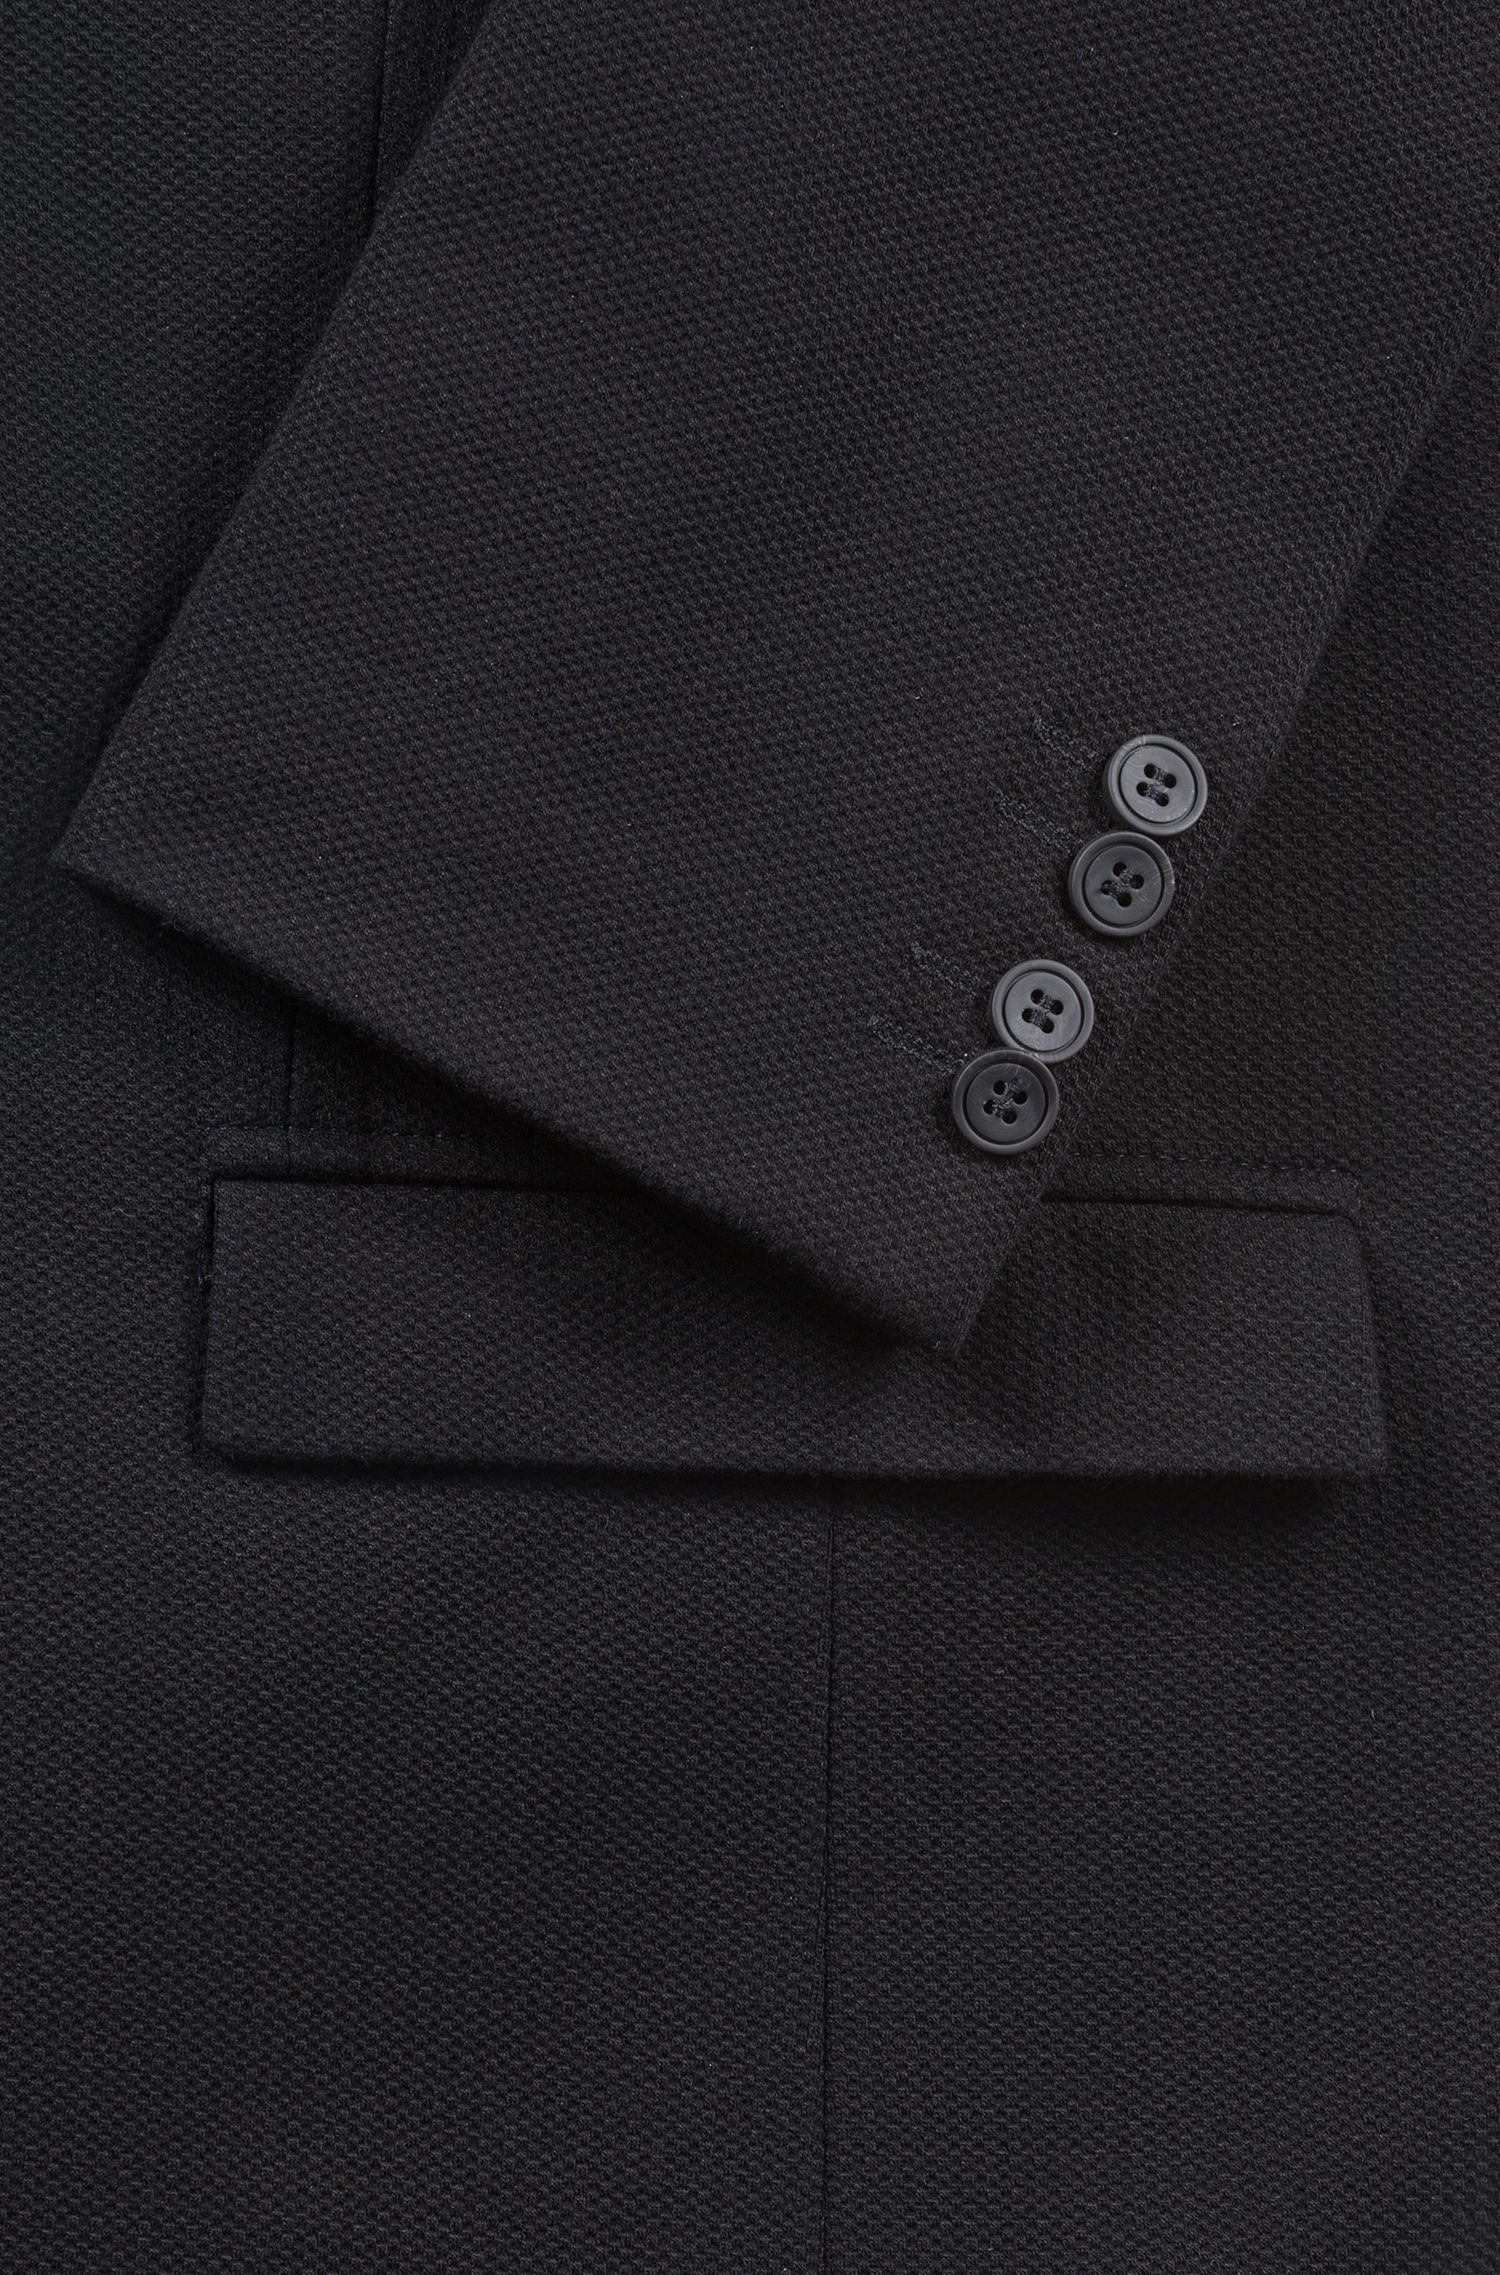 Blazer Slim Fit en jersey stretch à la structure 3D, Noir